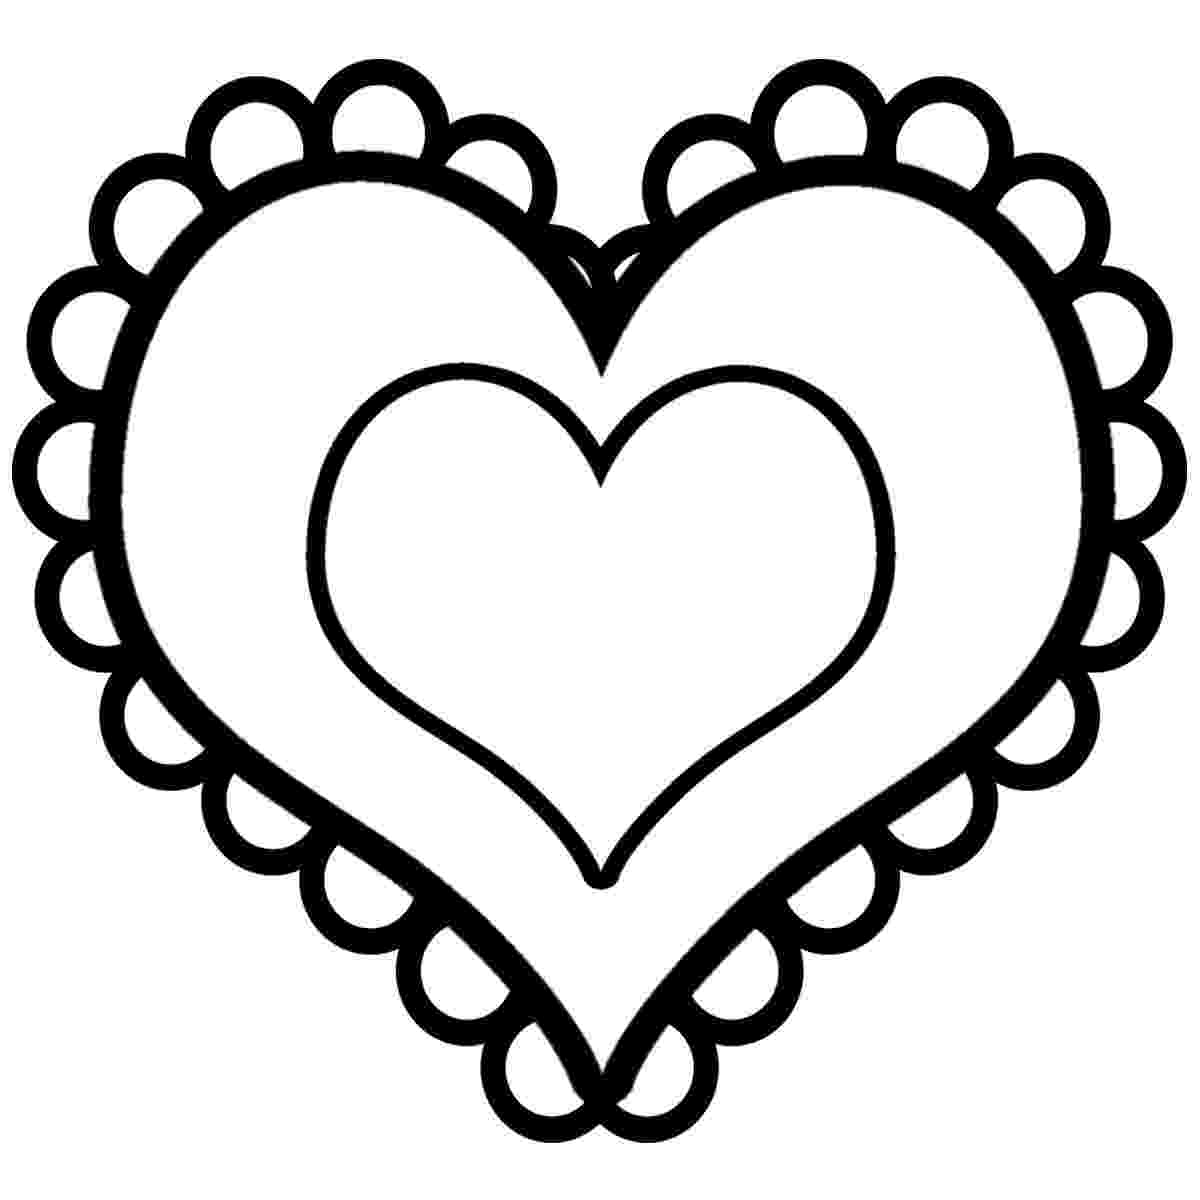 heart colouring pages 35 free printable heart coloring pages pages colouring heart